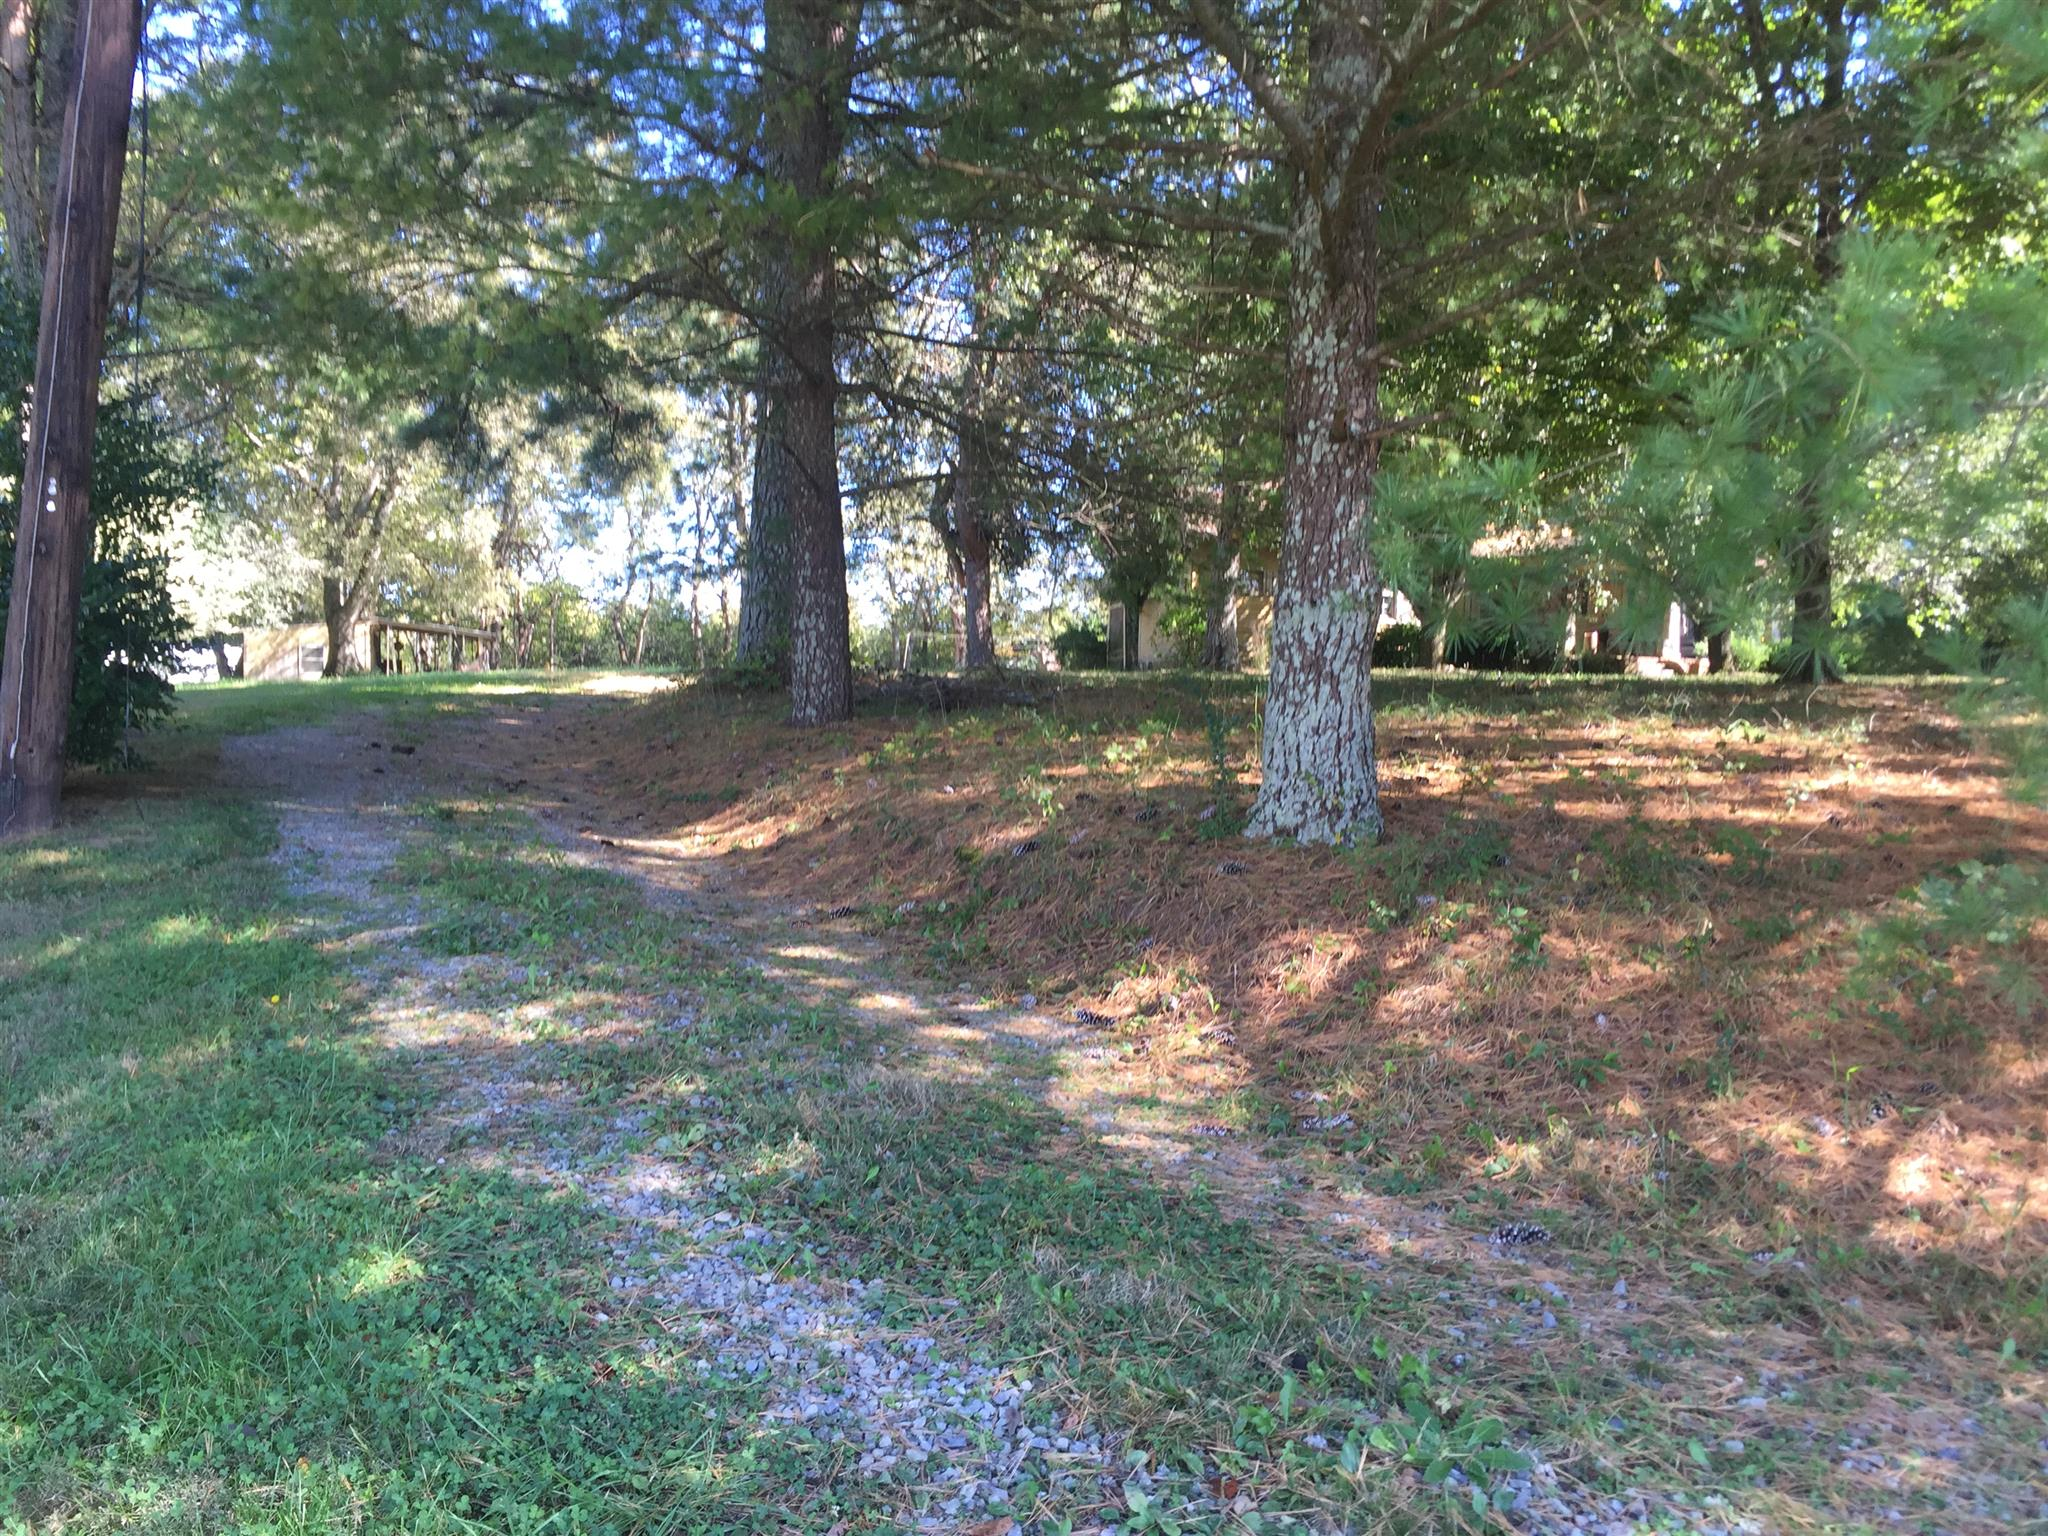 1498 Highway 31W, Goodlettsville in Sumner County County, TN 37072 Home for Sale